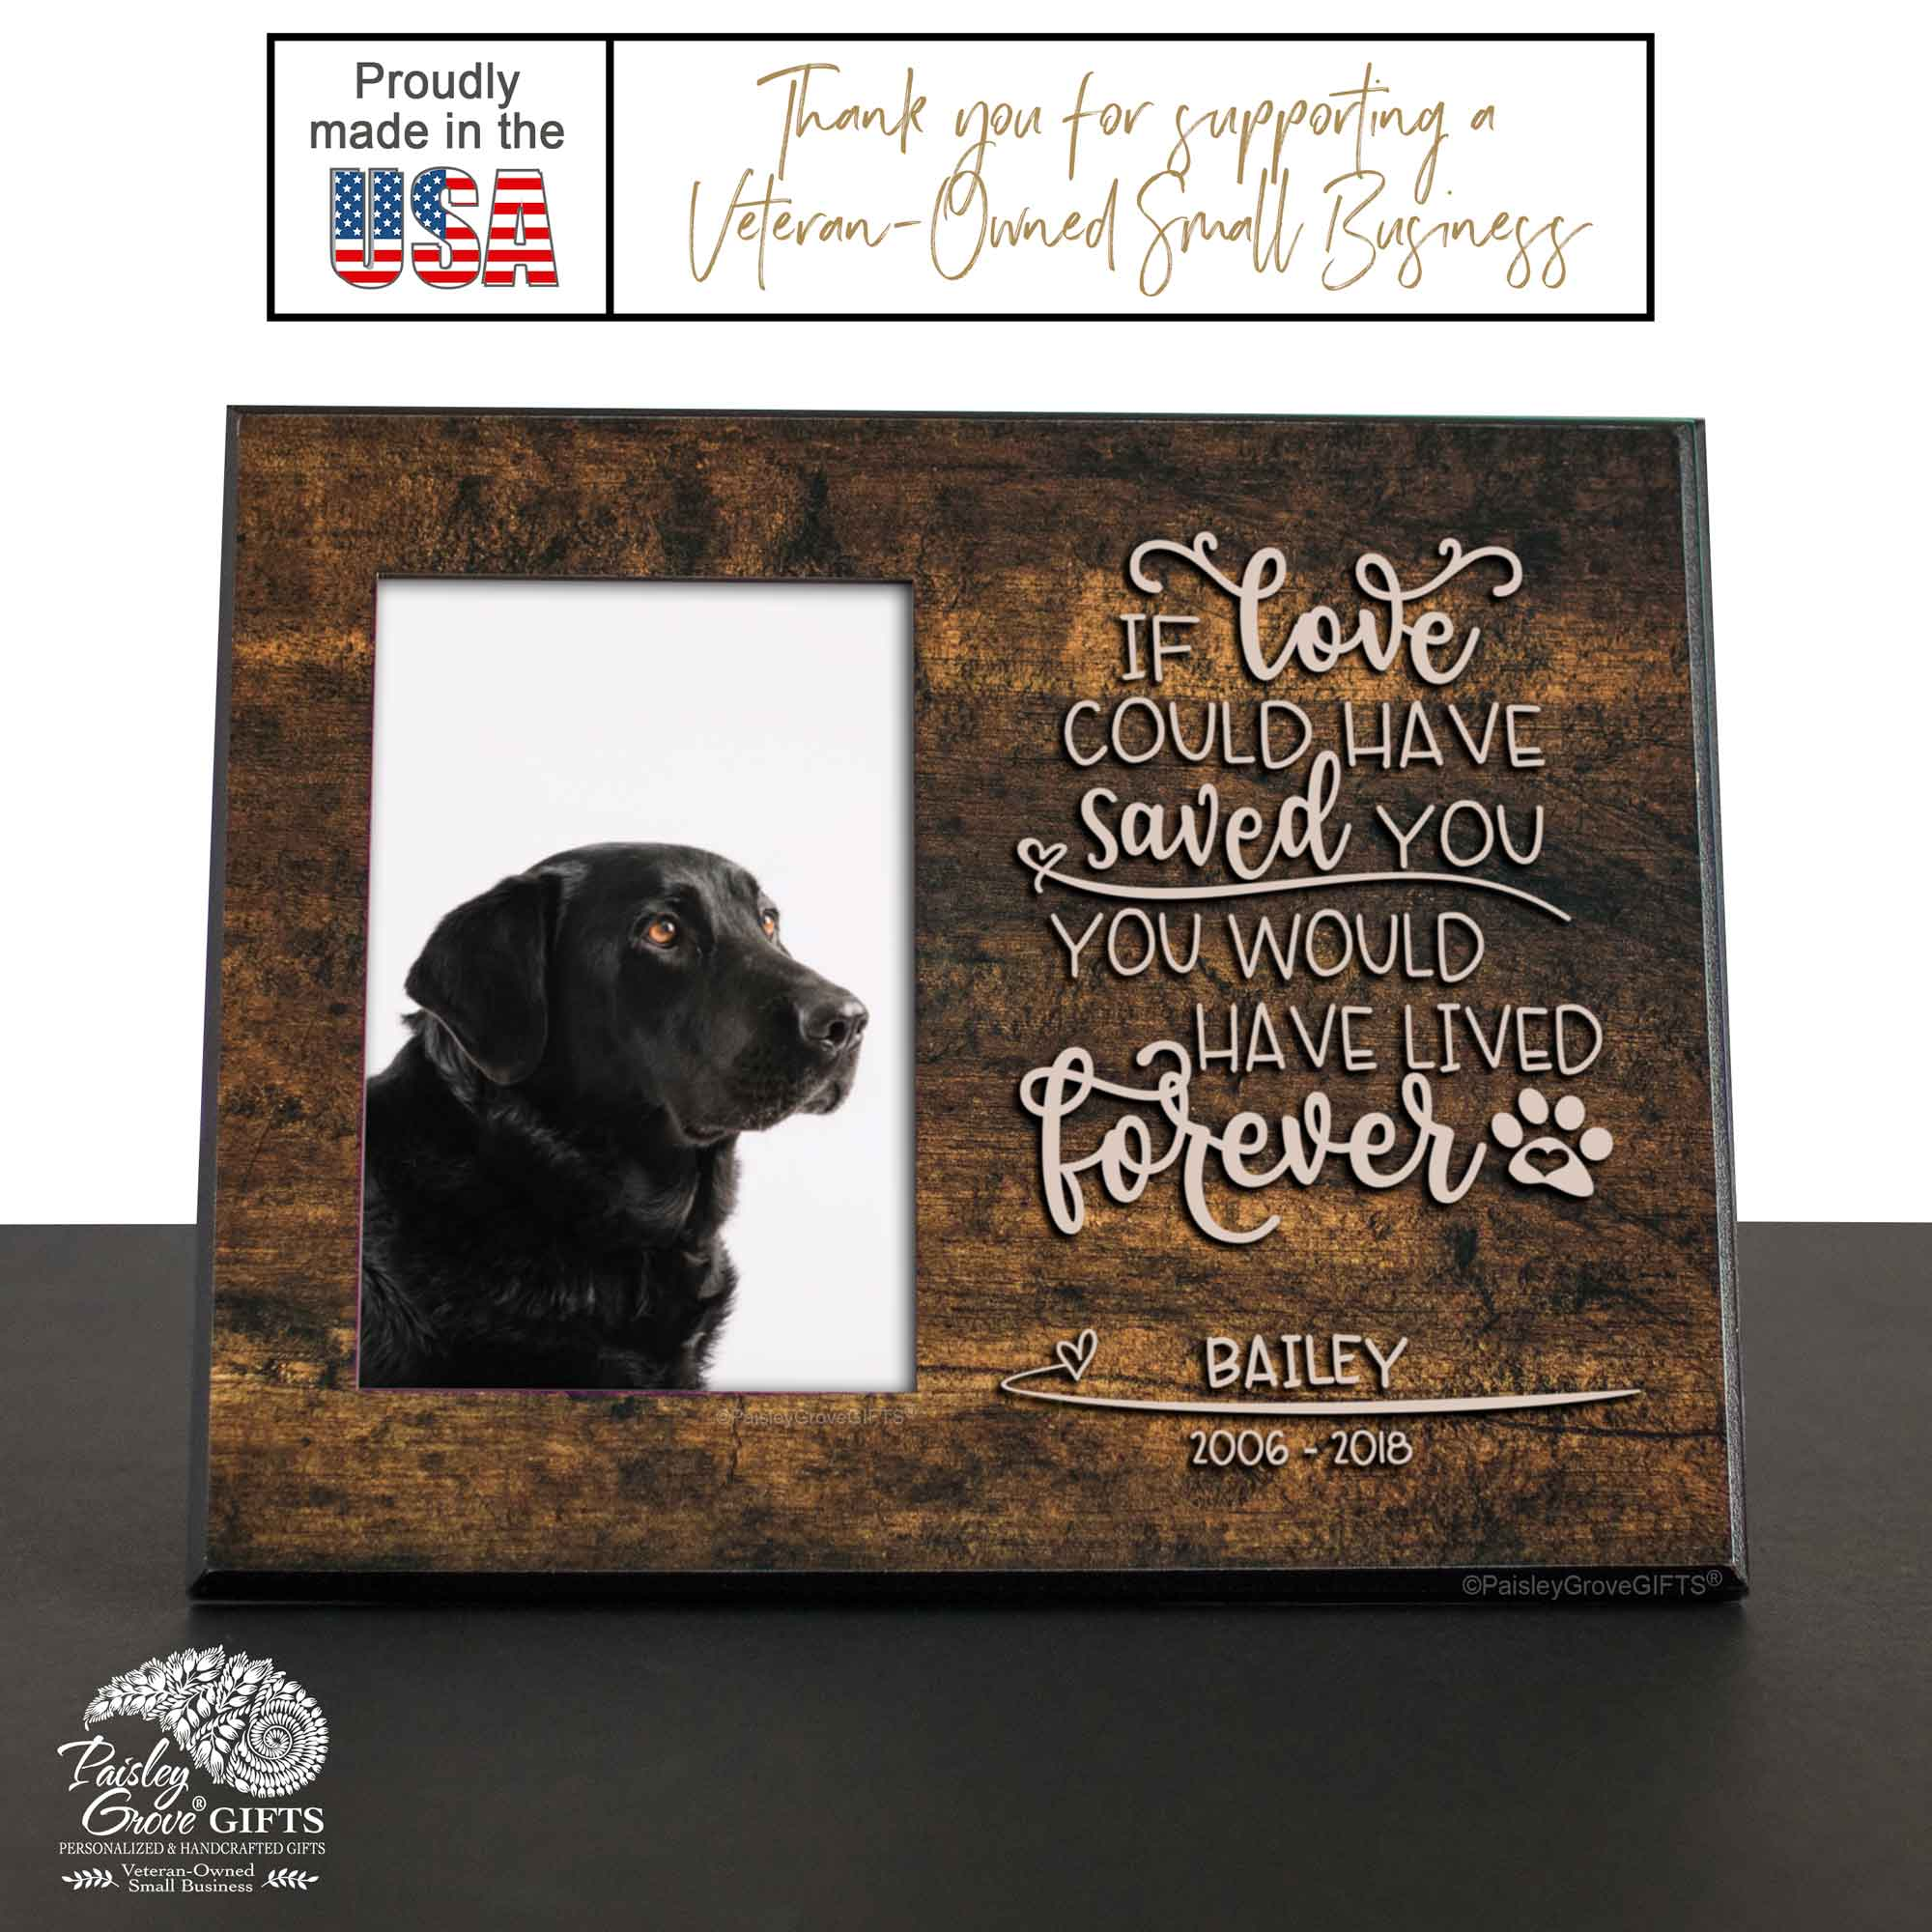 CopyrightPaisleyGroveGIFTS S280c Sympathy Gift for Pet Loss 8x10 Frame with 4x6 photo insert sizing and measurements